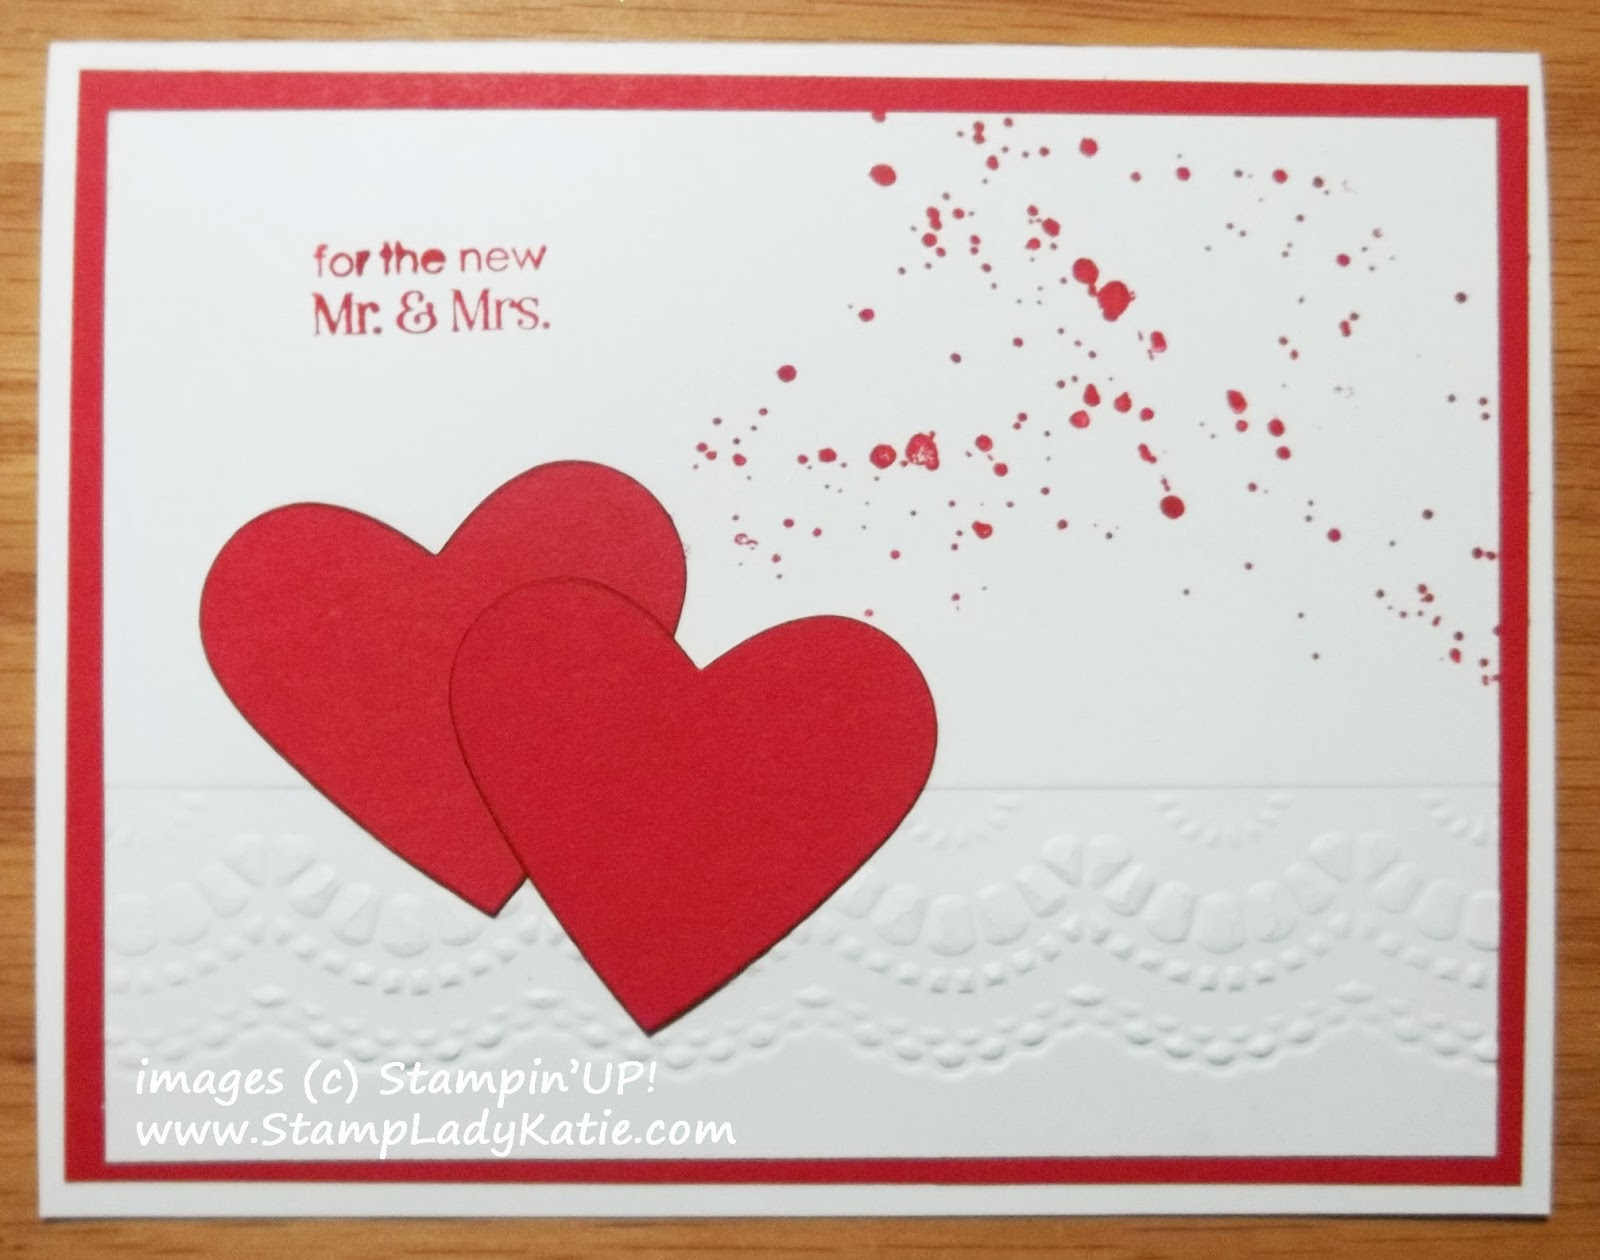 Valentine Card or Wedding Card with texture embossing using Stampin'UP!'s Delicate Designs Embossing Folders